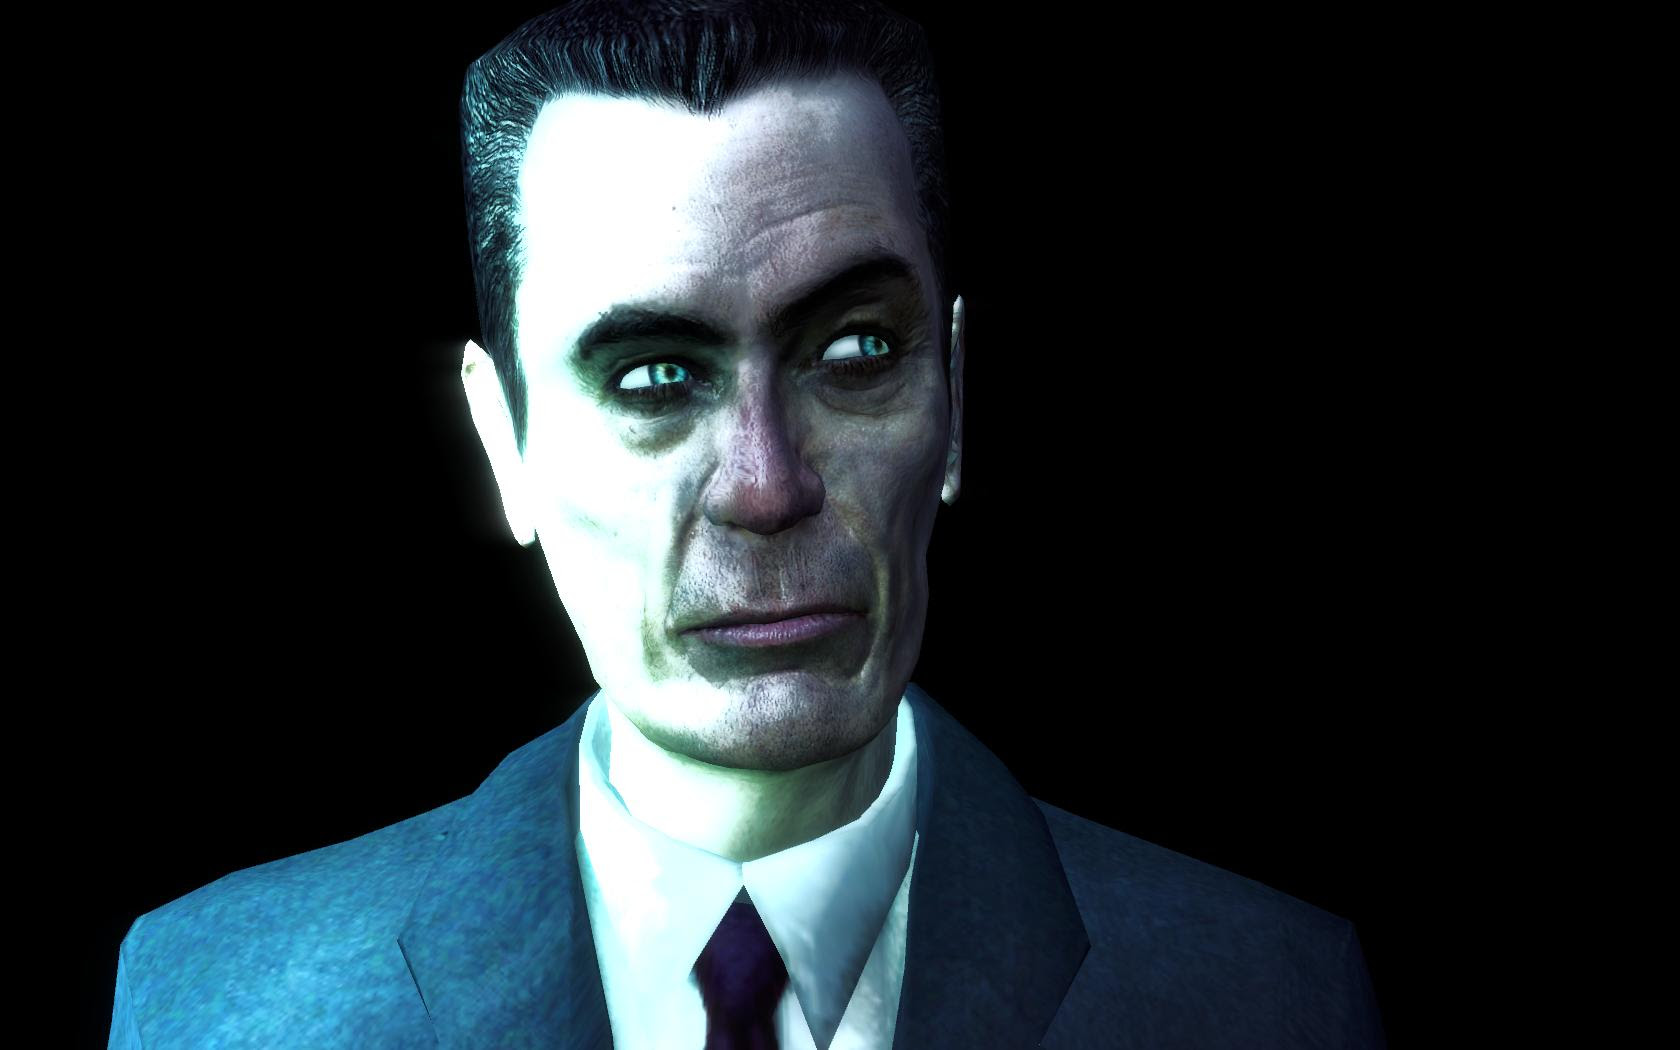 Half-Life 3 would not be the end according to series writer screenshot